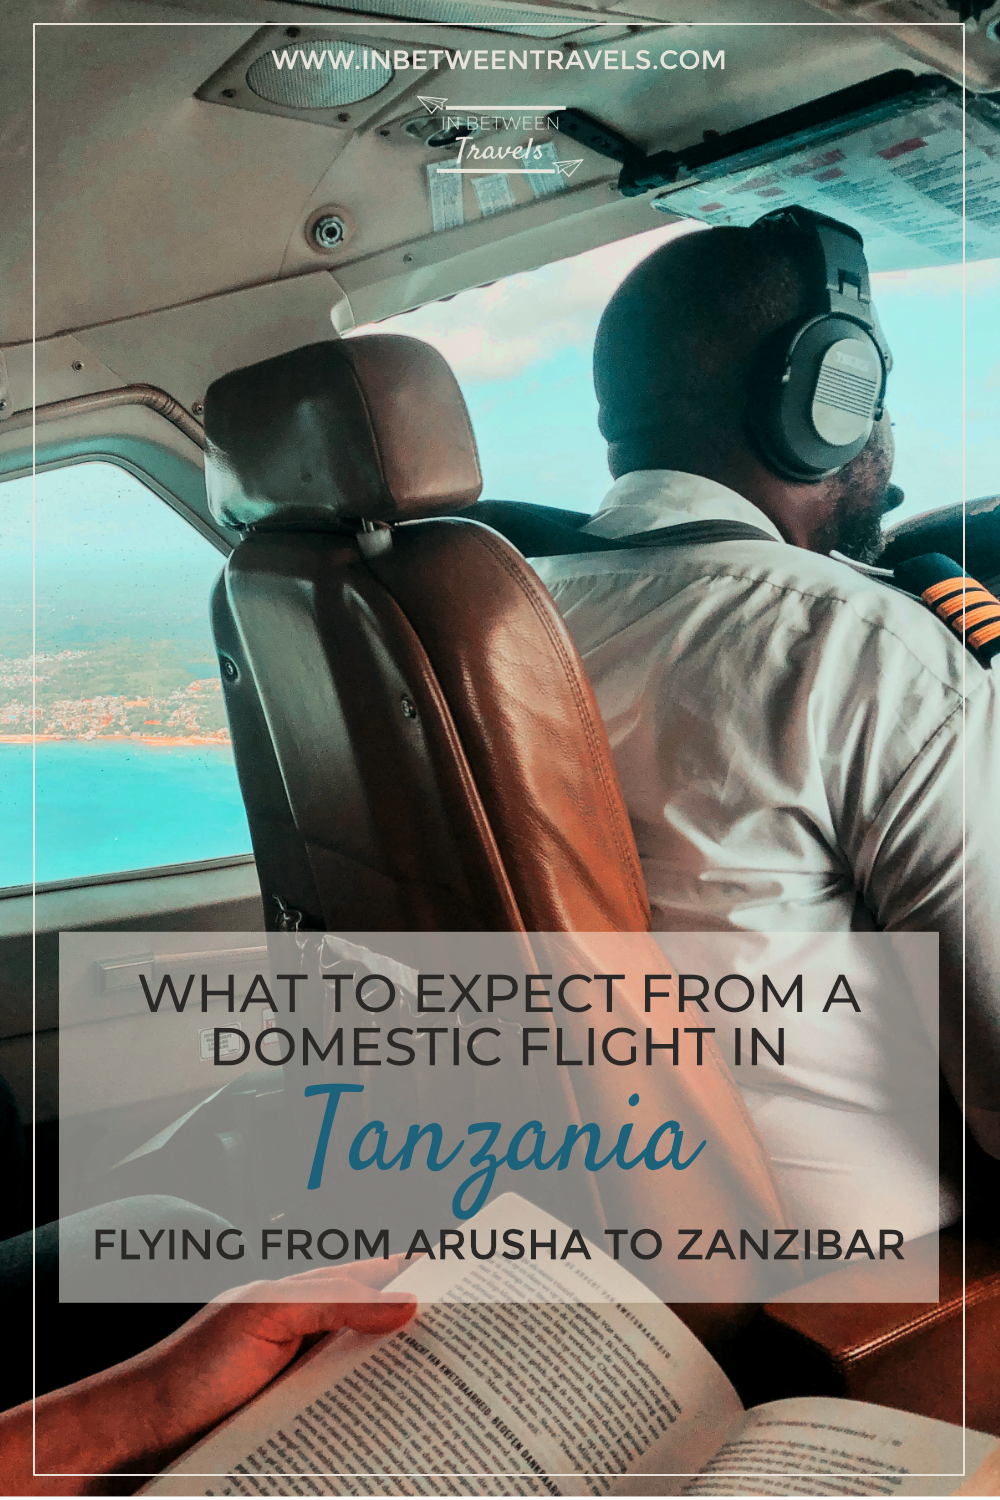 What to expect from a domestic flight in Tanzania